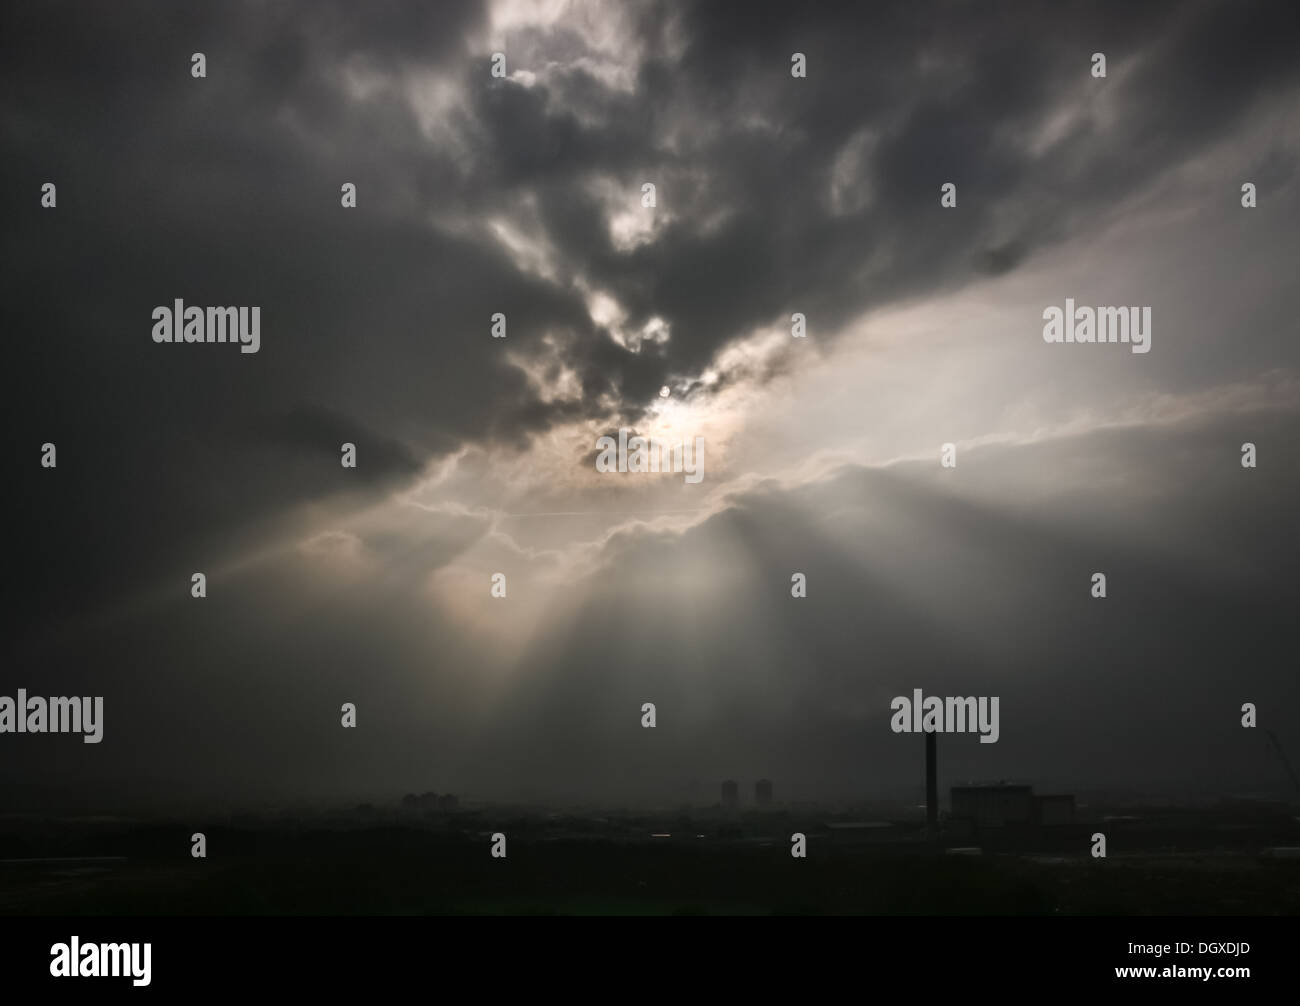 Sun rays break through the dark storm clouds. Damaging Wind and Rain Storms hit across England and Wales - Stock Image